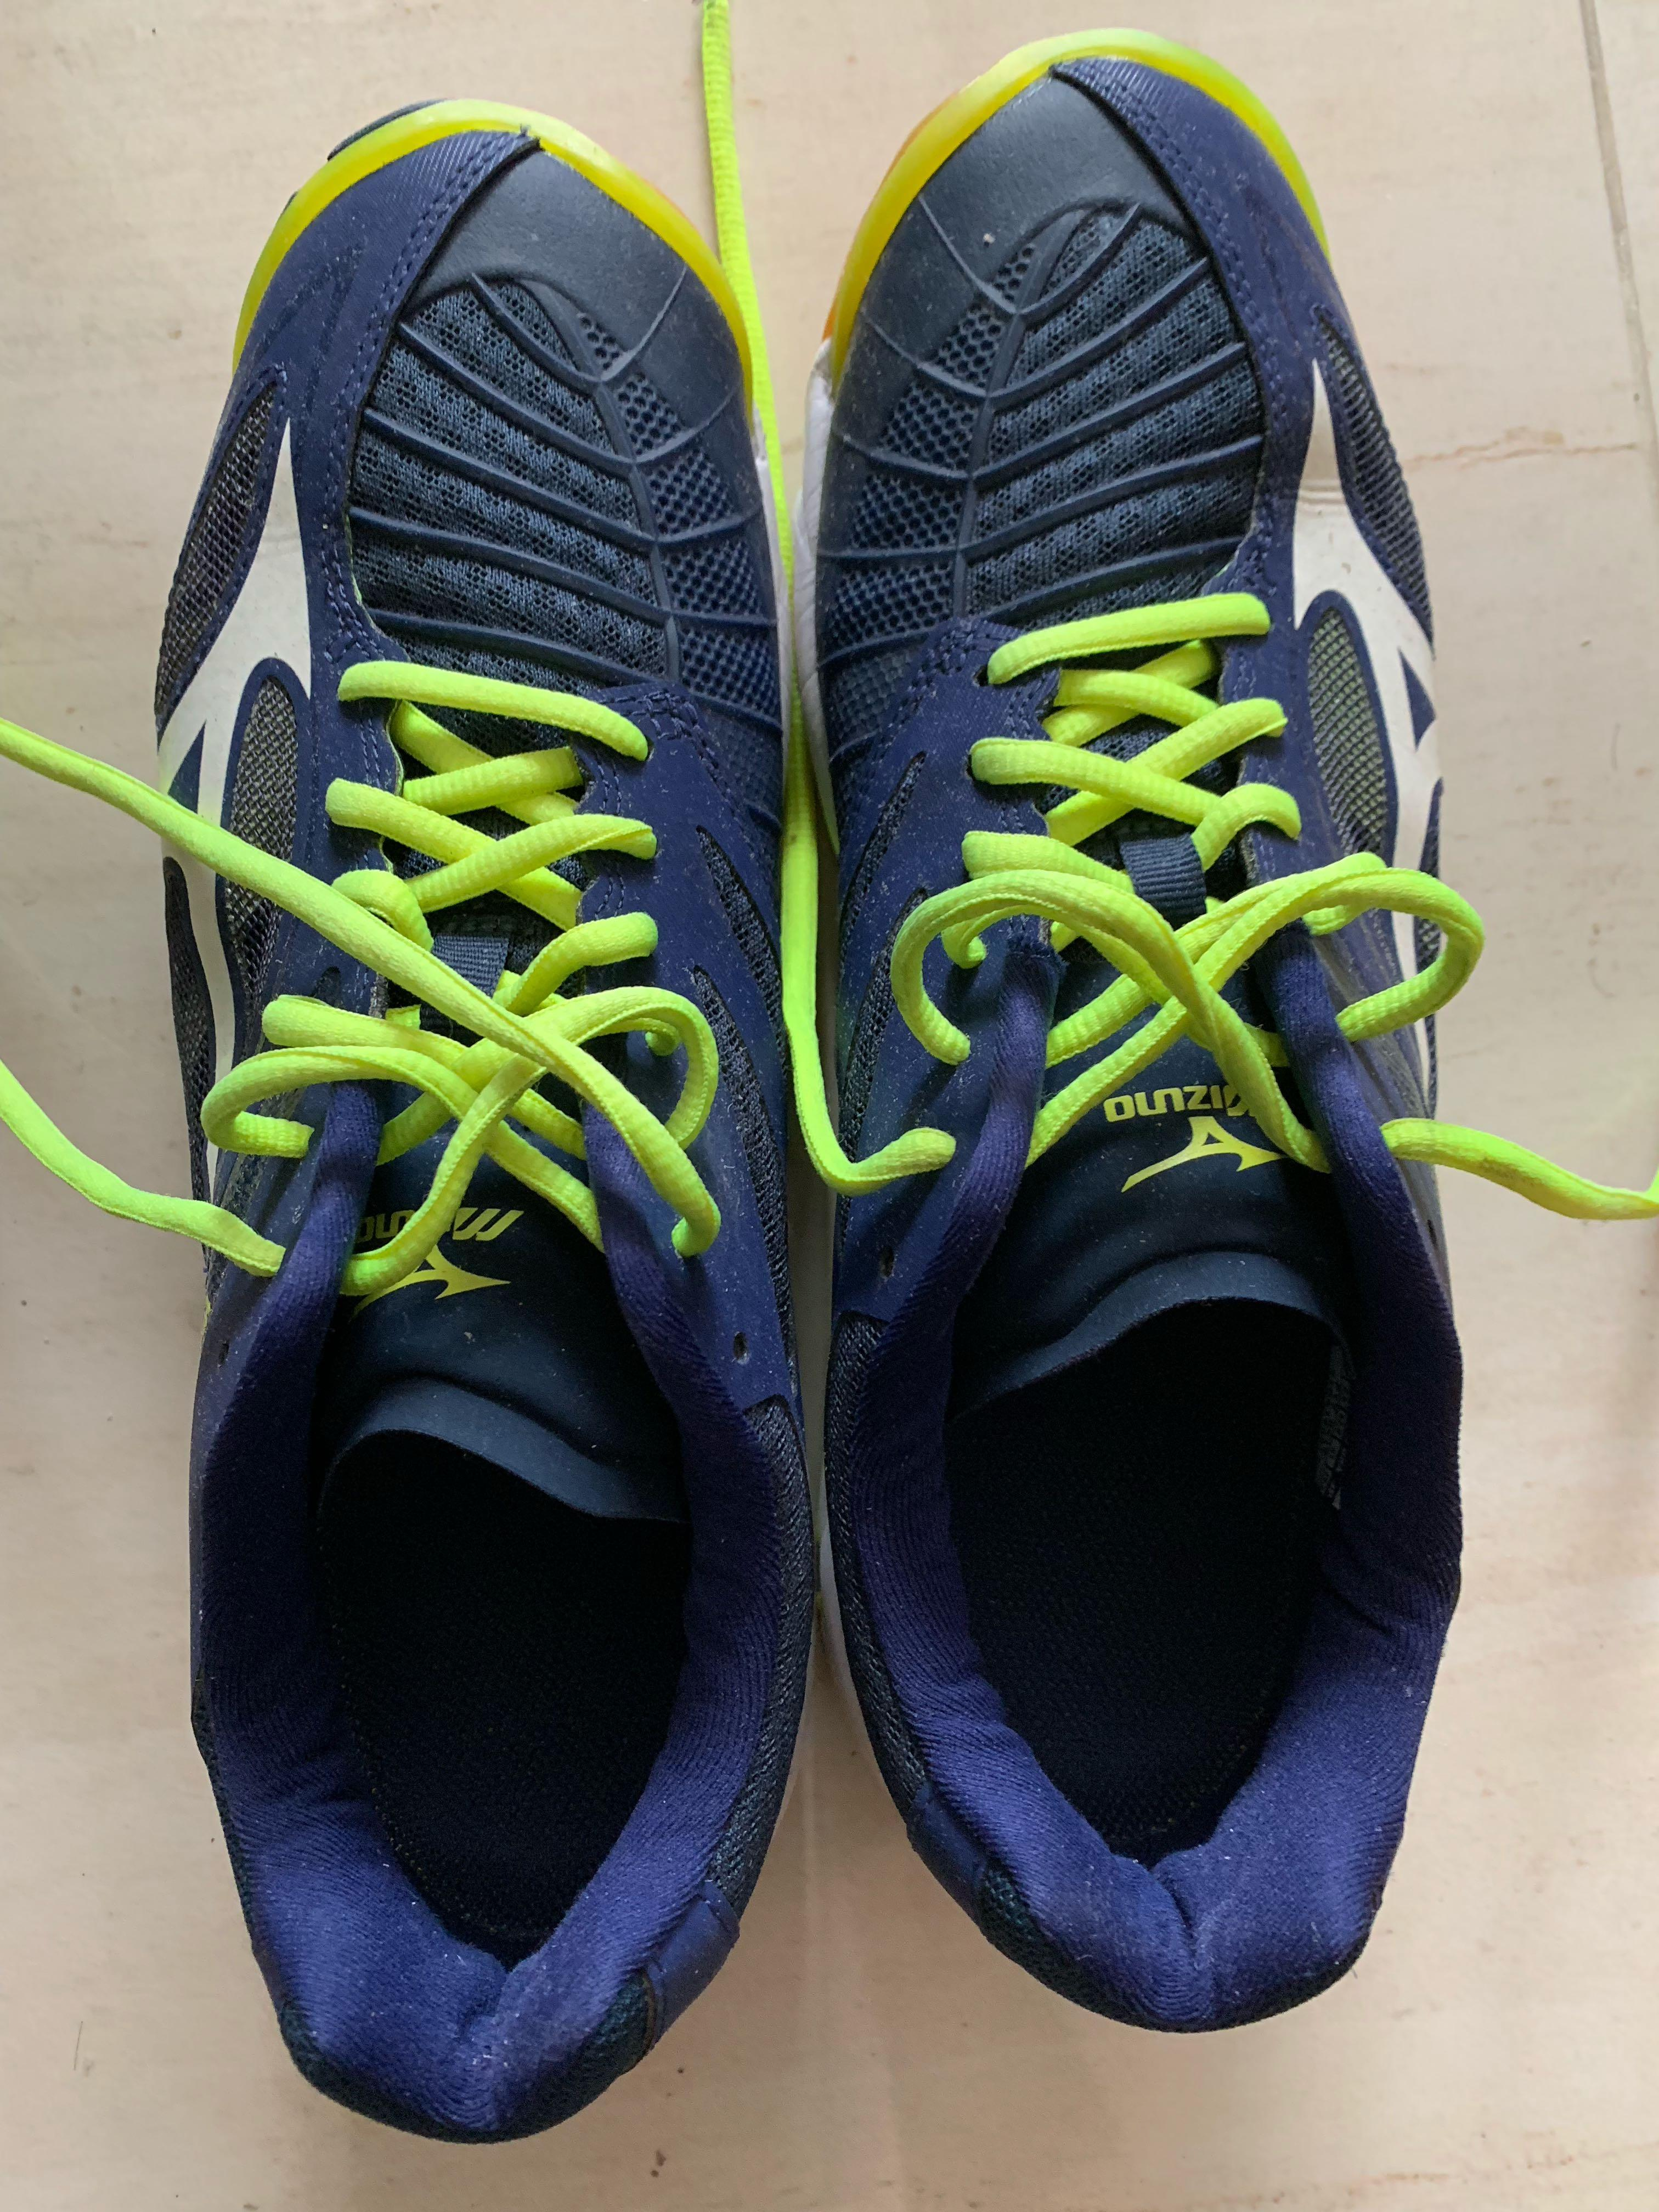 mens mizuno running shoes size 9.5 europe homme one years